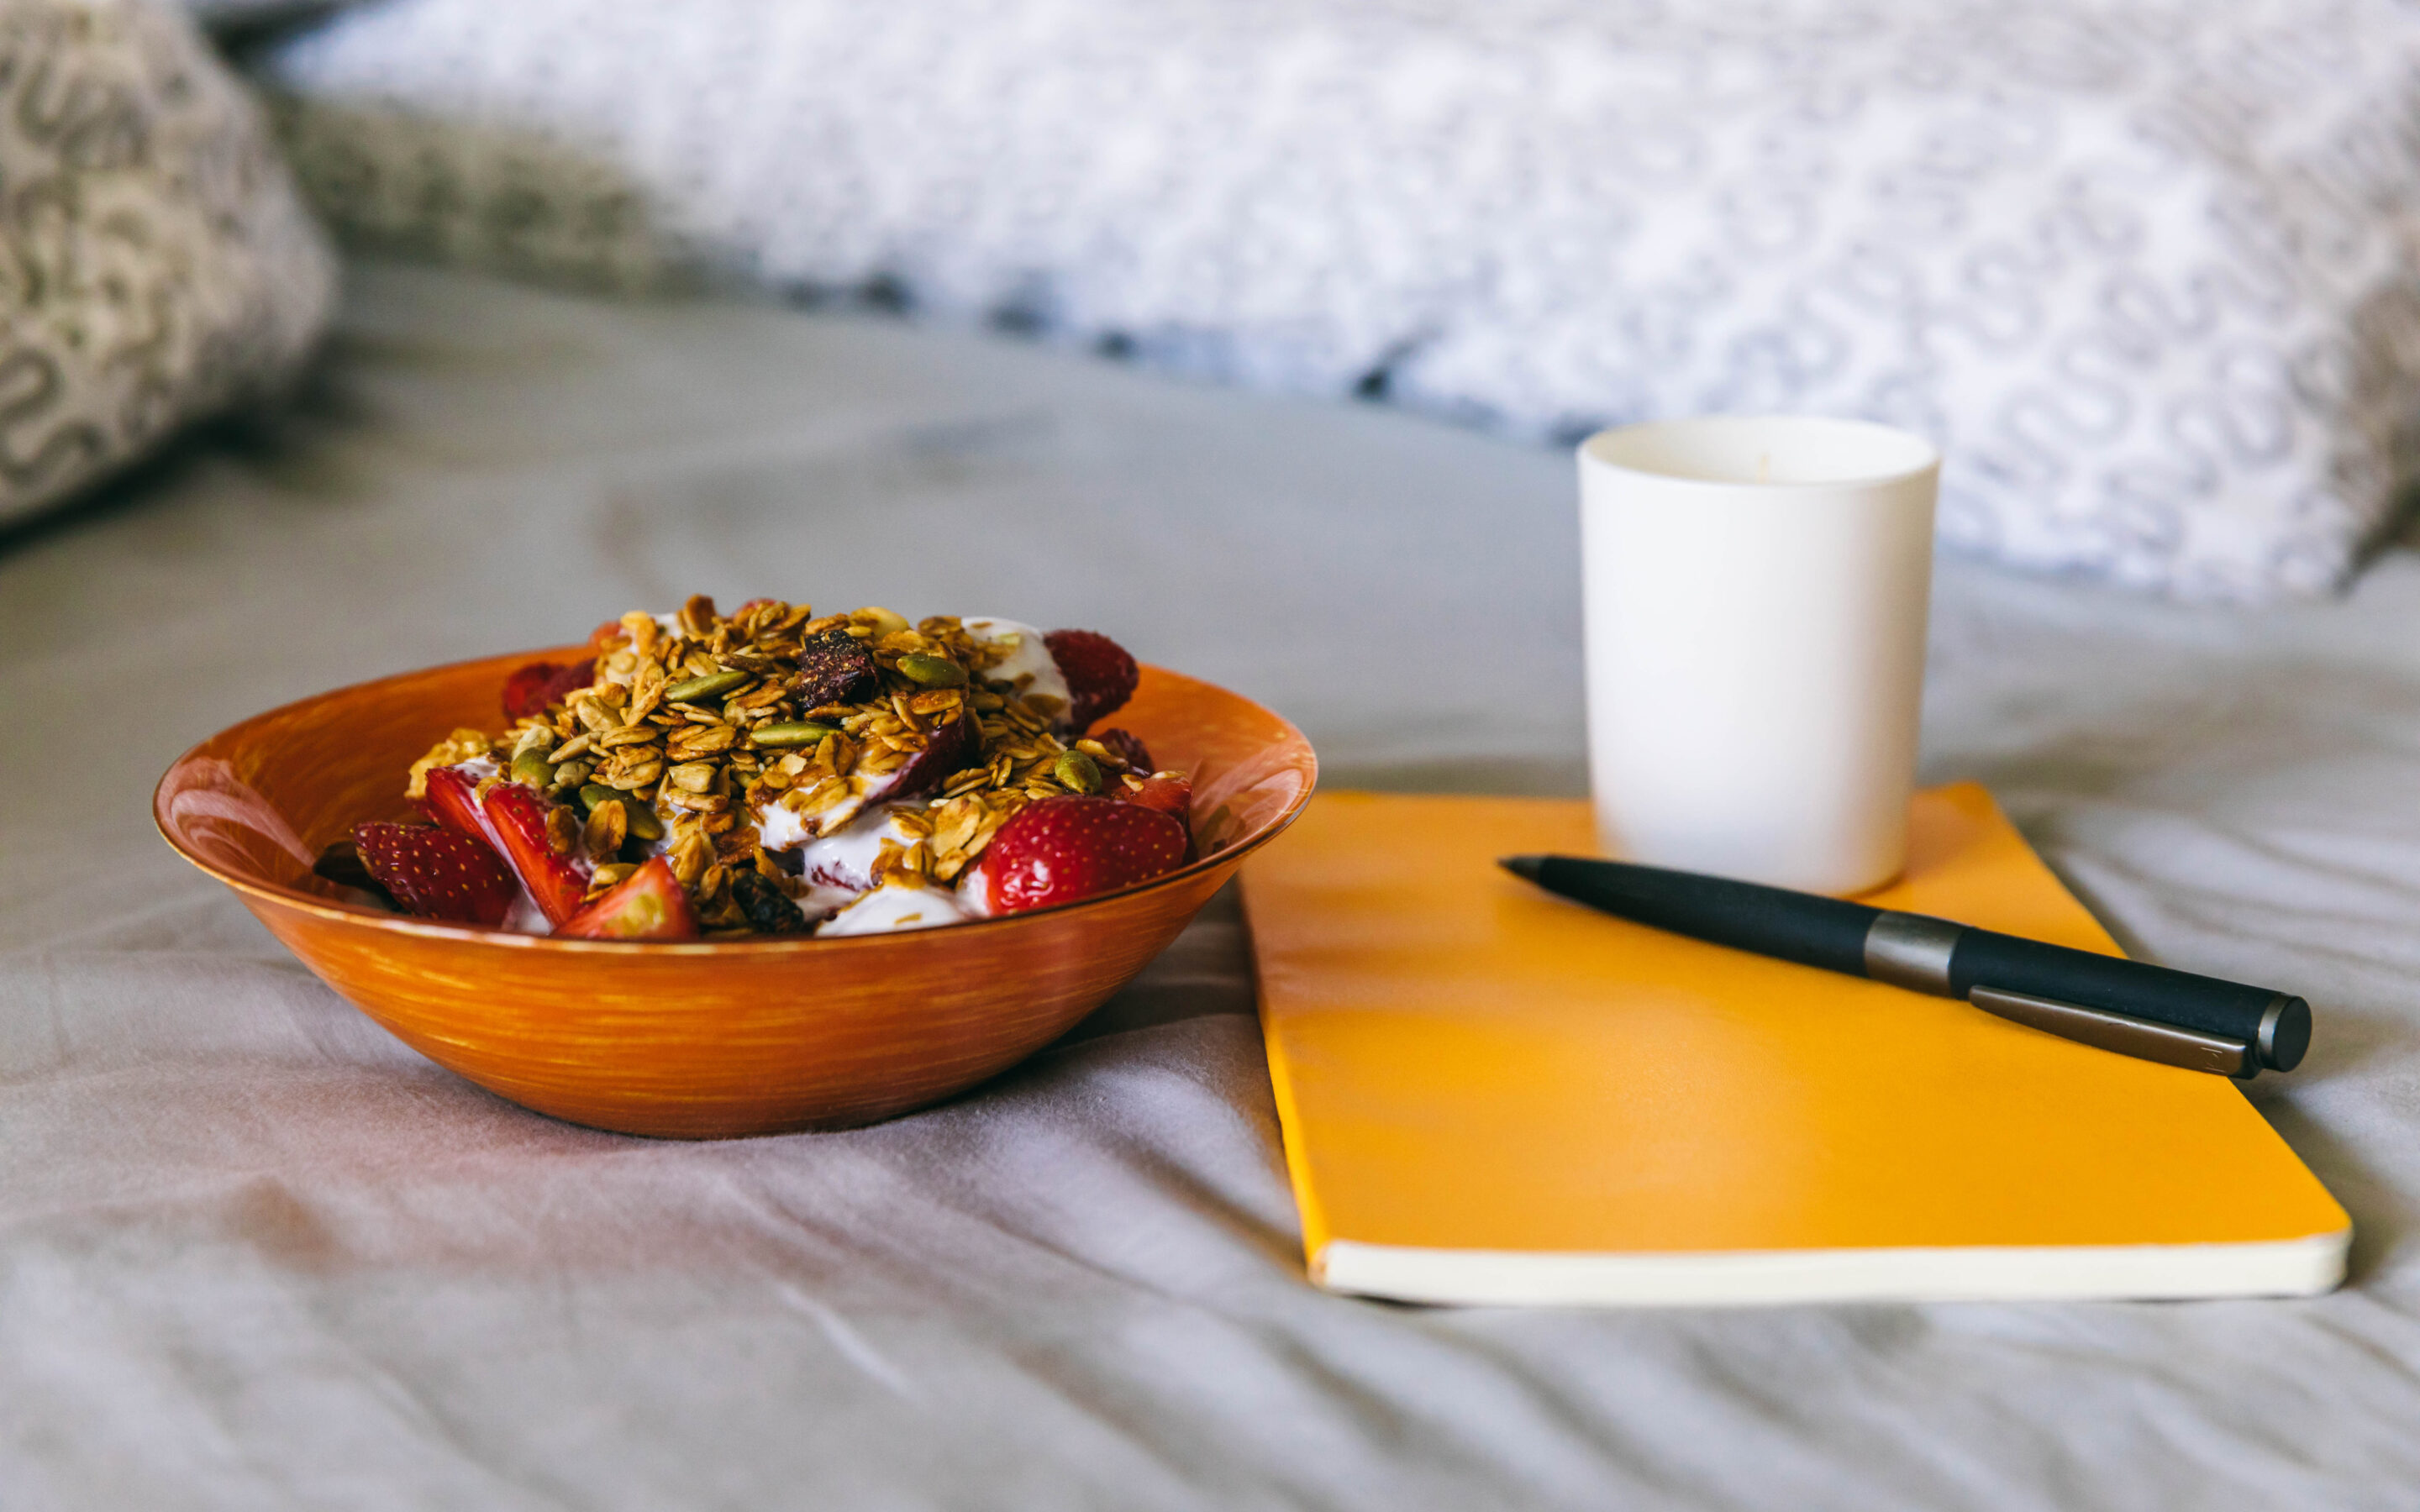 bowl of granola beside journal depicting a detox of life